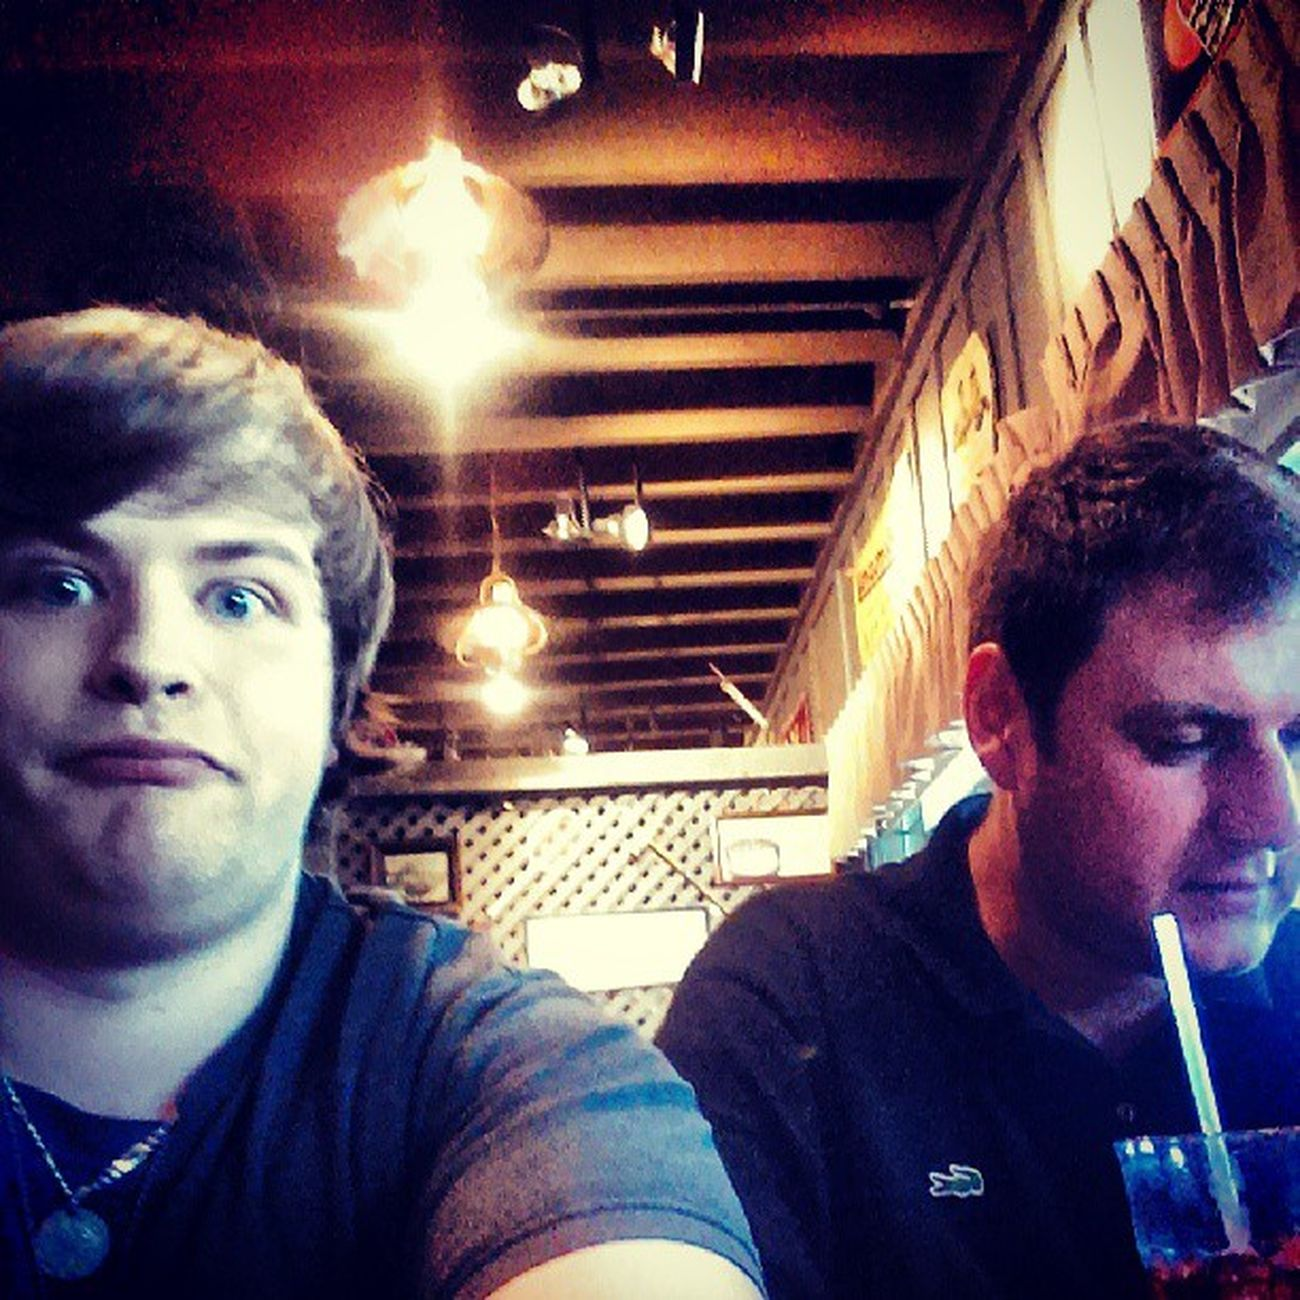 Me and dad Familynight Cracklebarrel